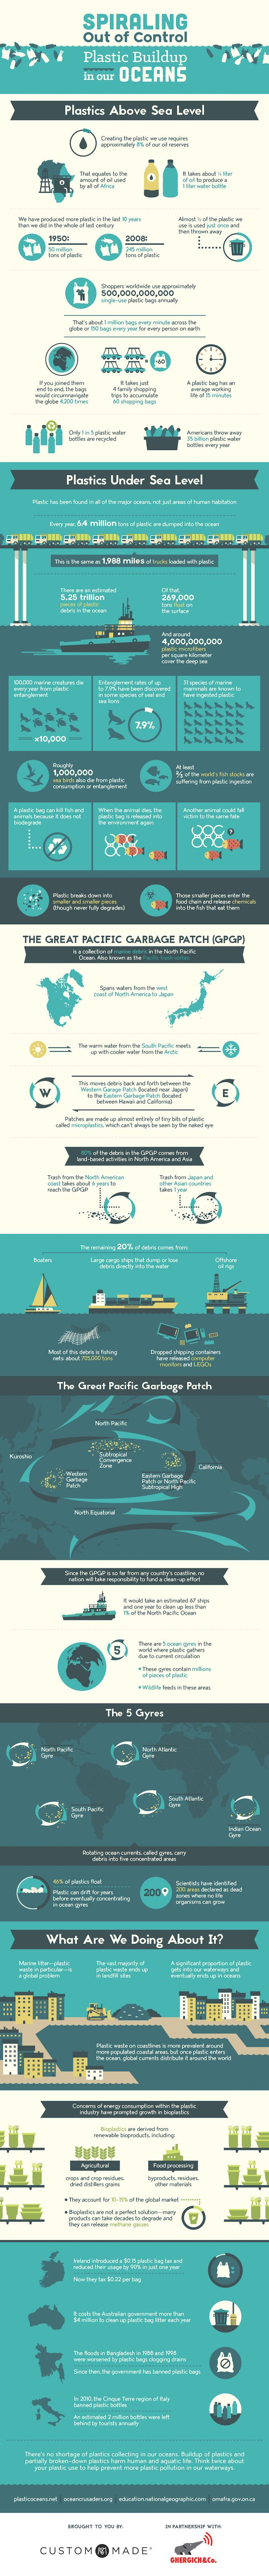 Spiraling Out of Control: The Plastic Buildup in Our Oceans [Infographic], via @HubSpot